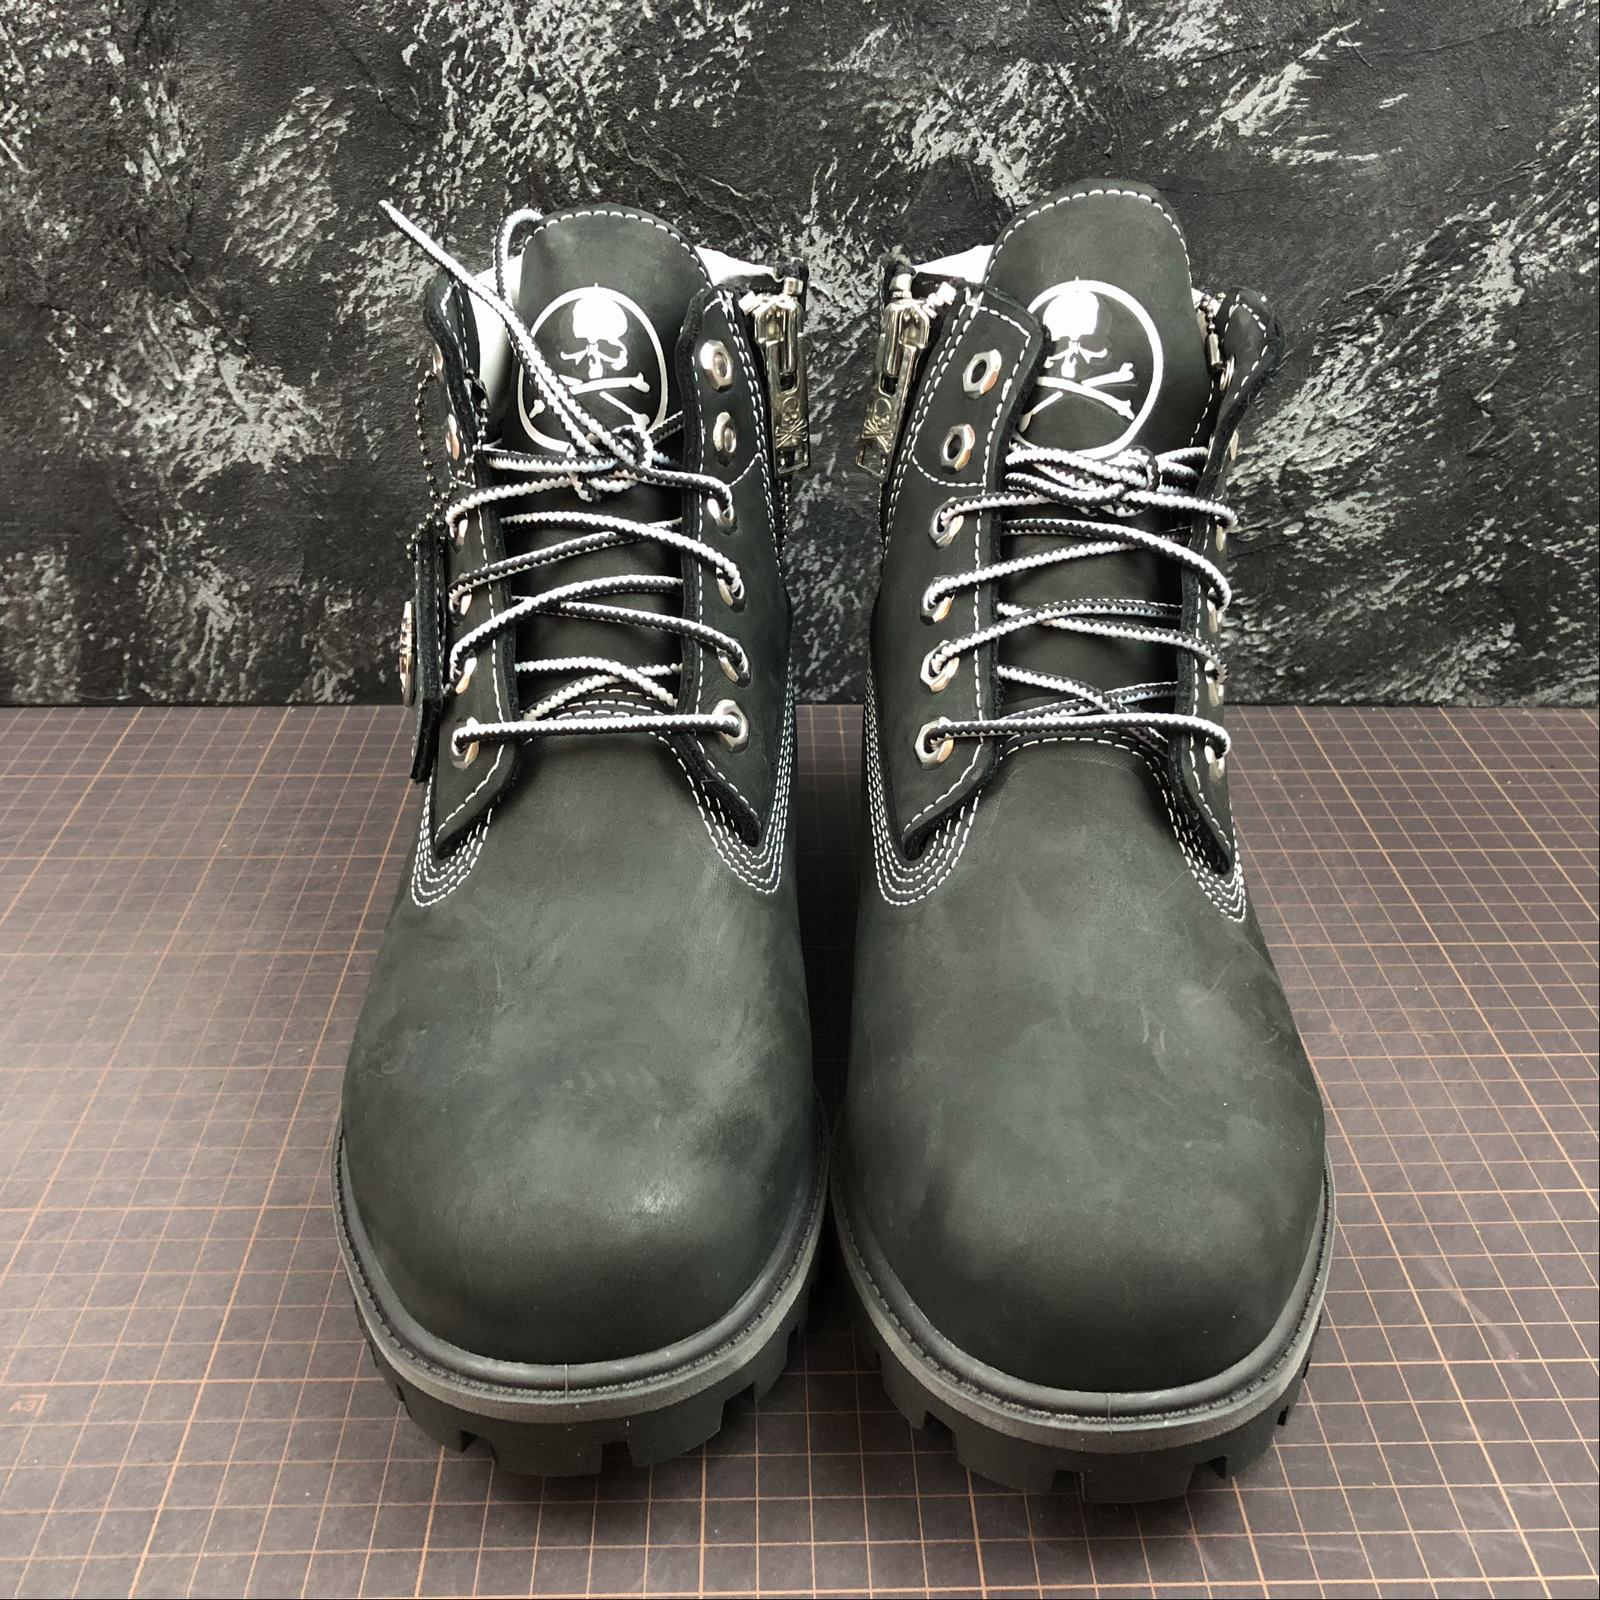 Зимние мужские ботинки Timberland x Mastermind Japan 5-Inch Zip Waterproof Boots Black - фото №3